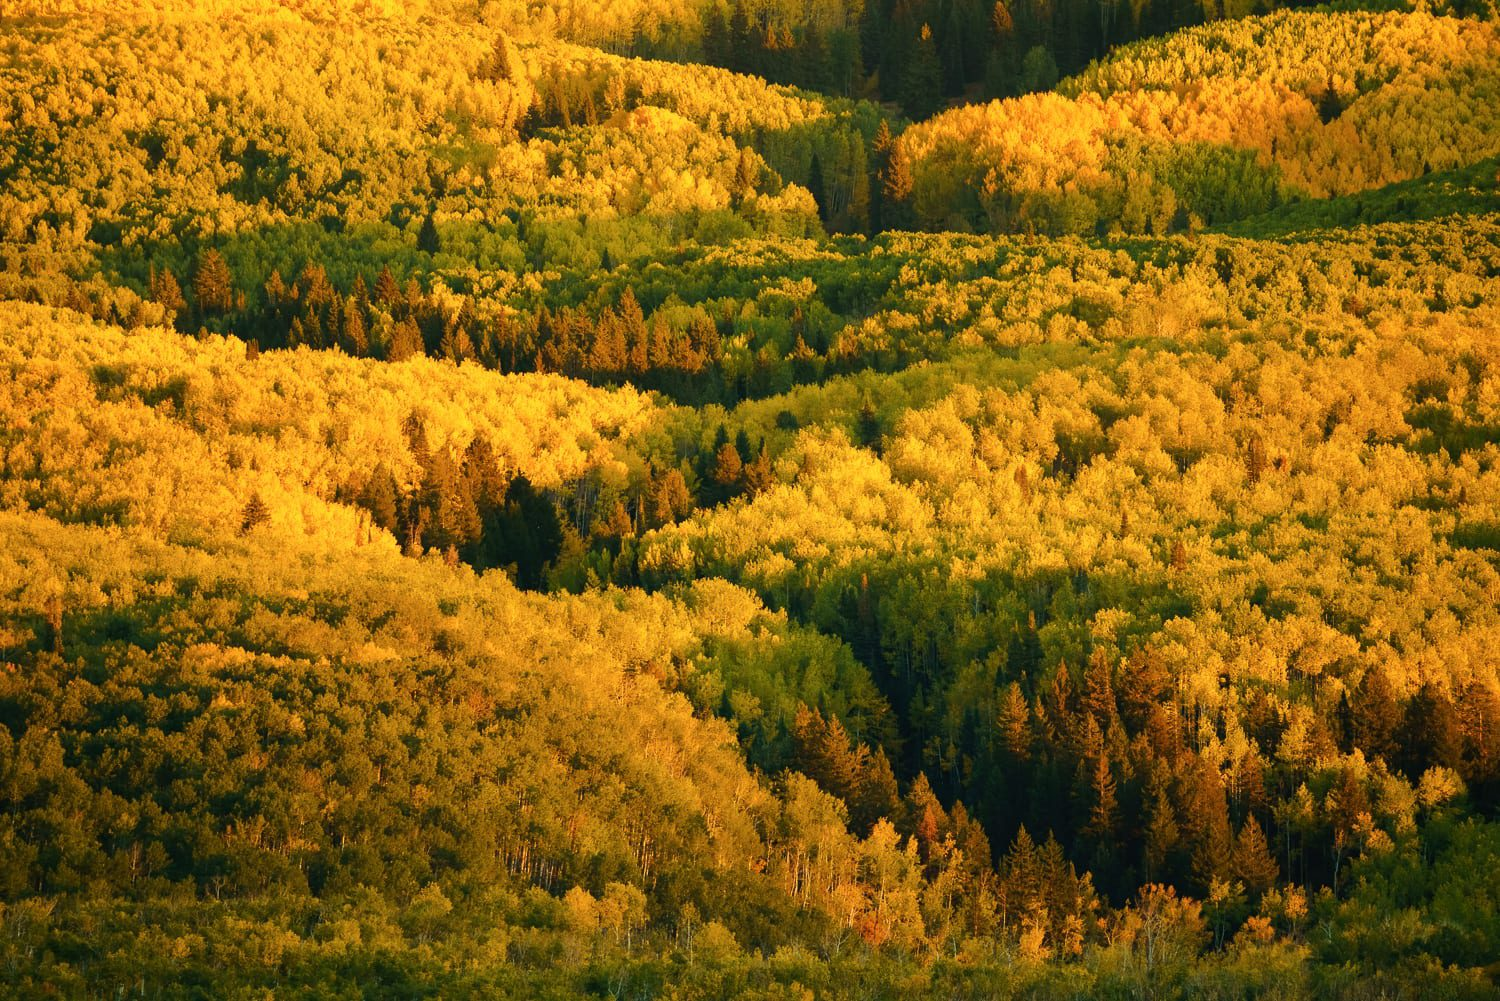 A line of pine trees surrounded by yellow aspens.